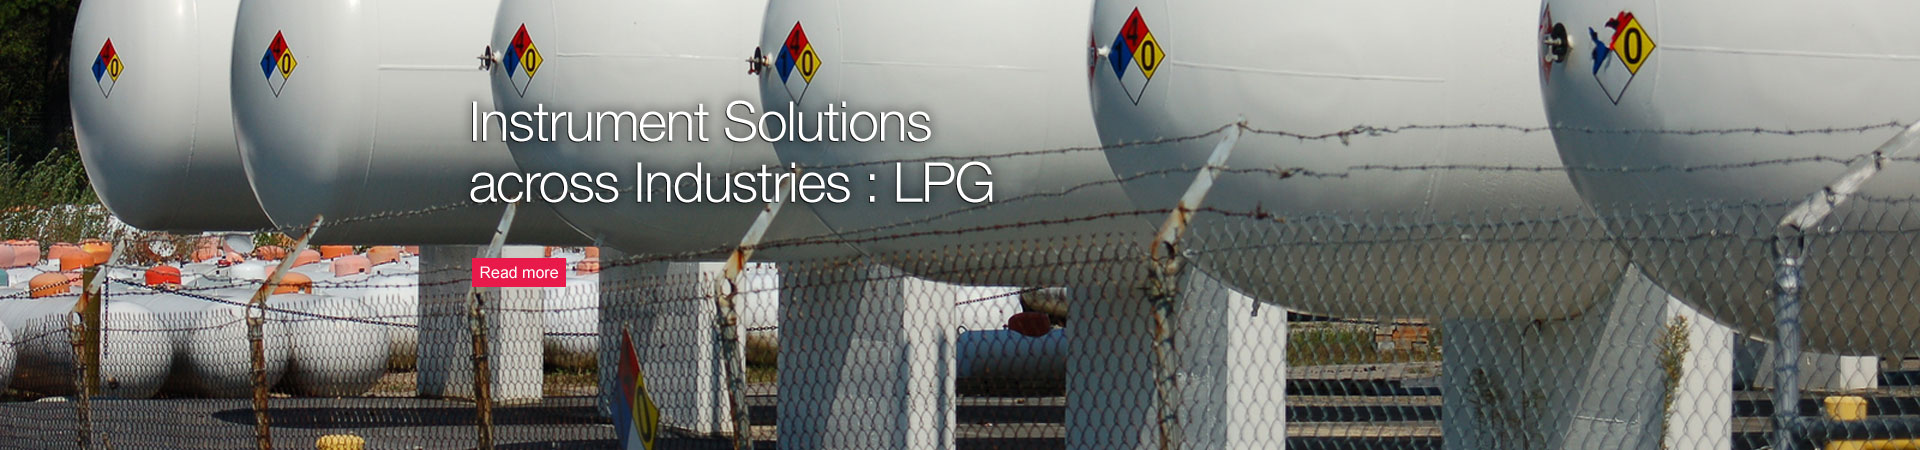 Instrument Solutions across Industries : LPG